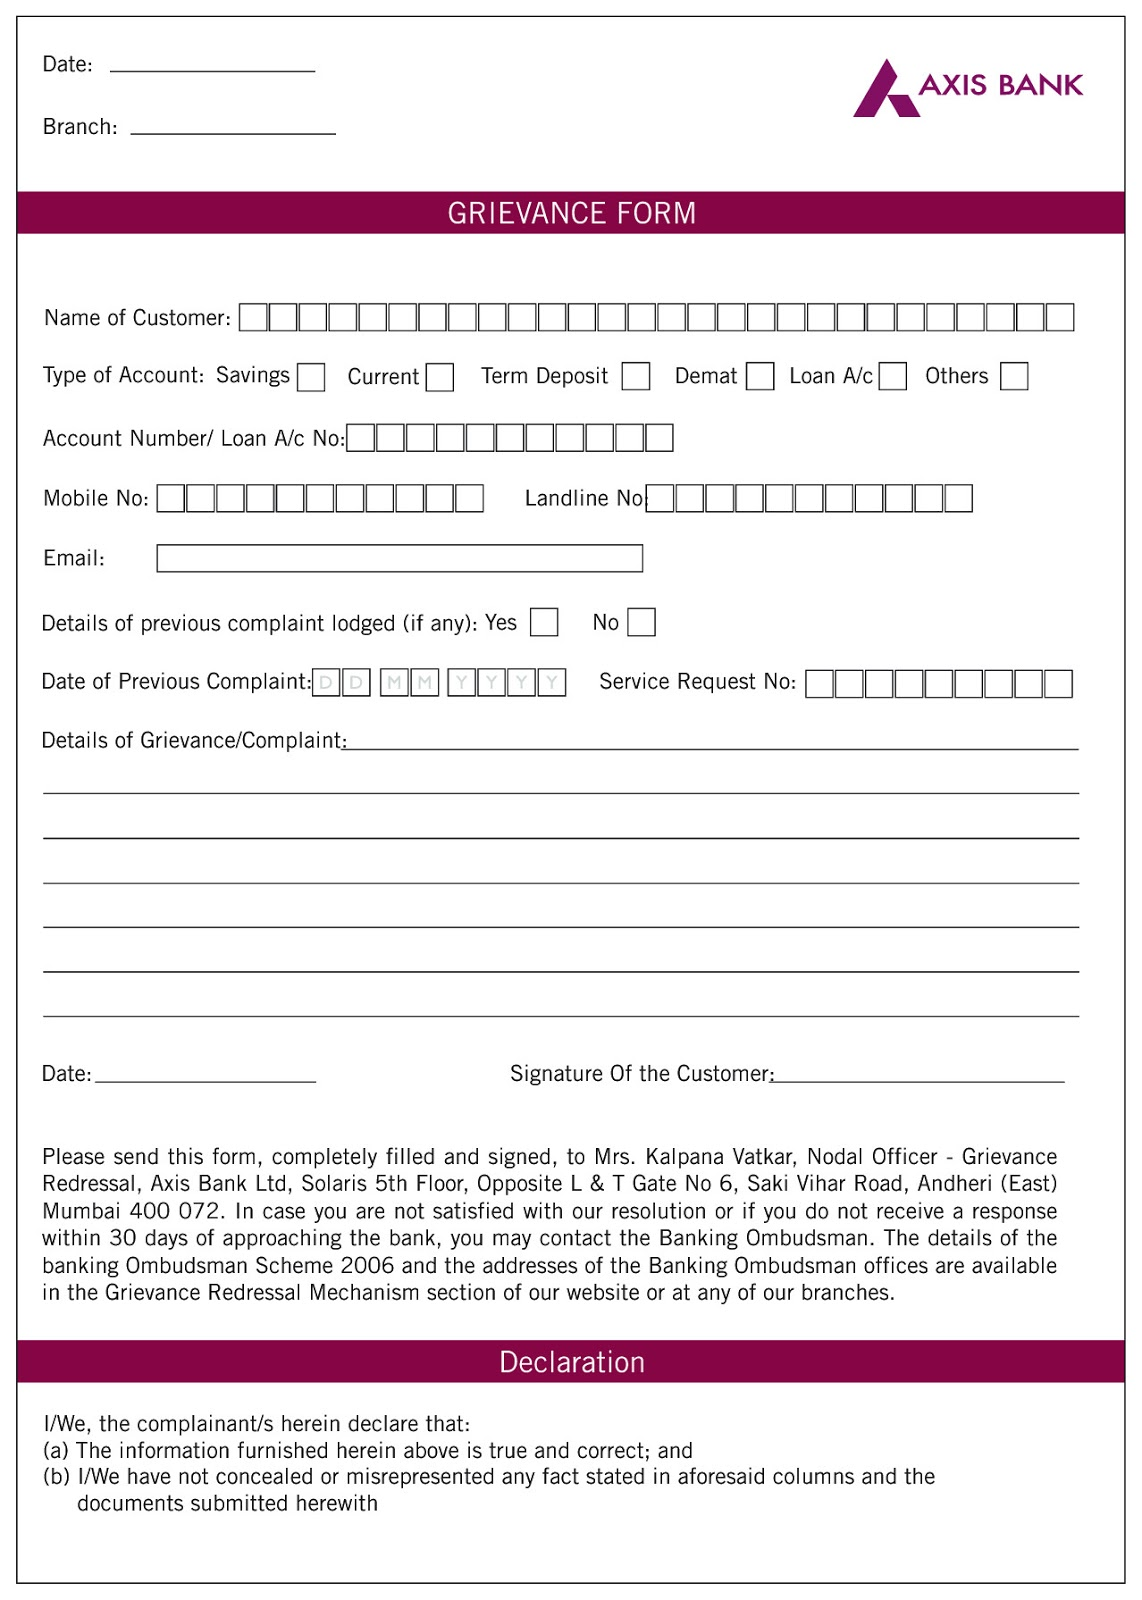 posting form http www axisbank com download grievance form pdf